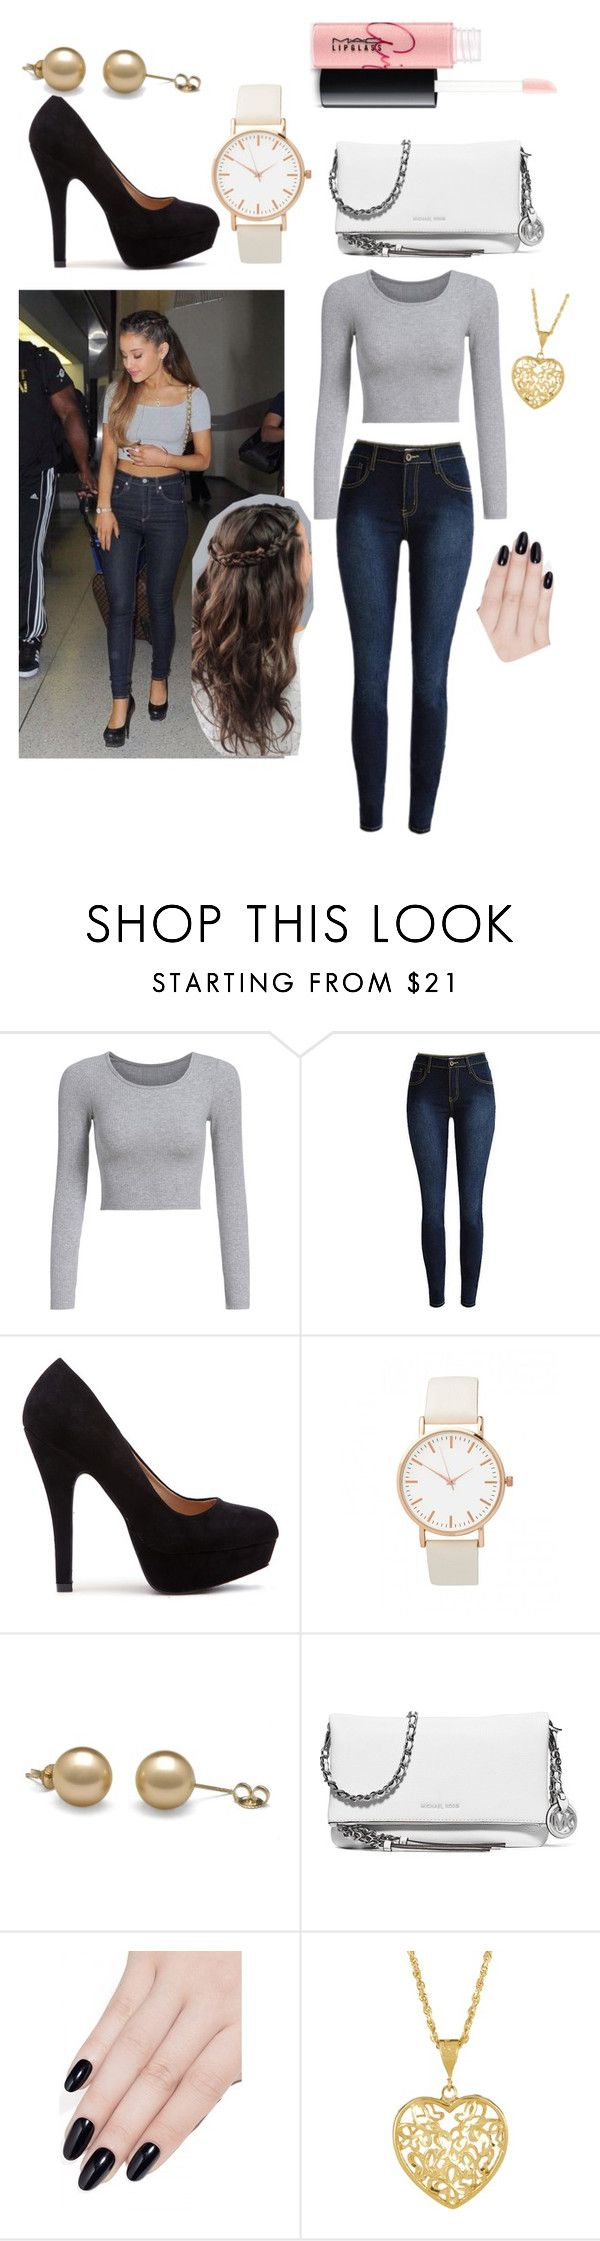 """〰Ariana grande casual"" by picking-petals ❤ liked on Polyvore featuring MICHAEL Michael Kors, ncLA and MAC Cosmetics"